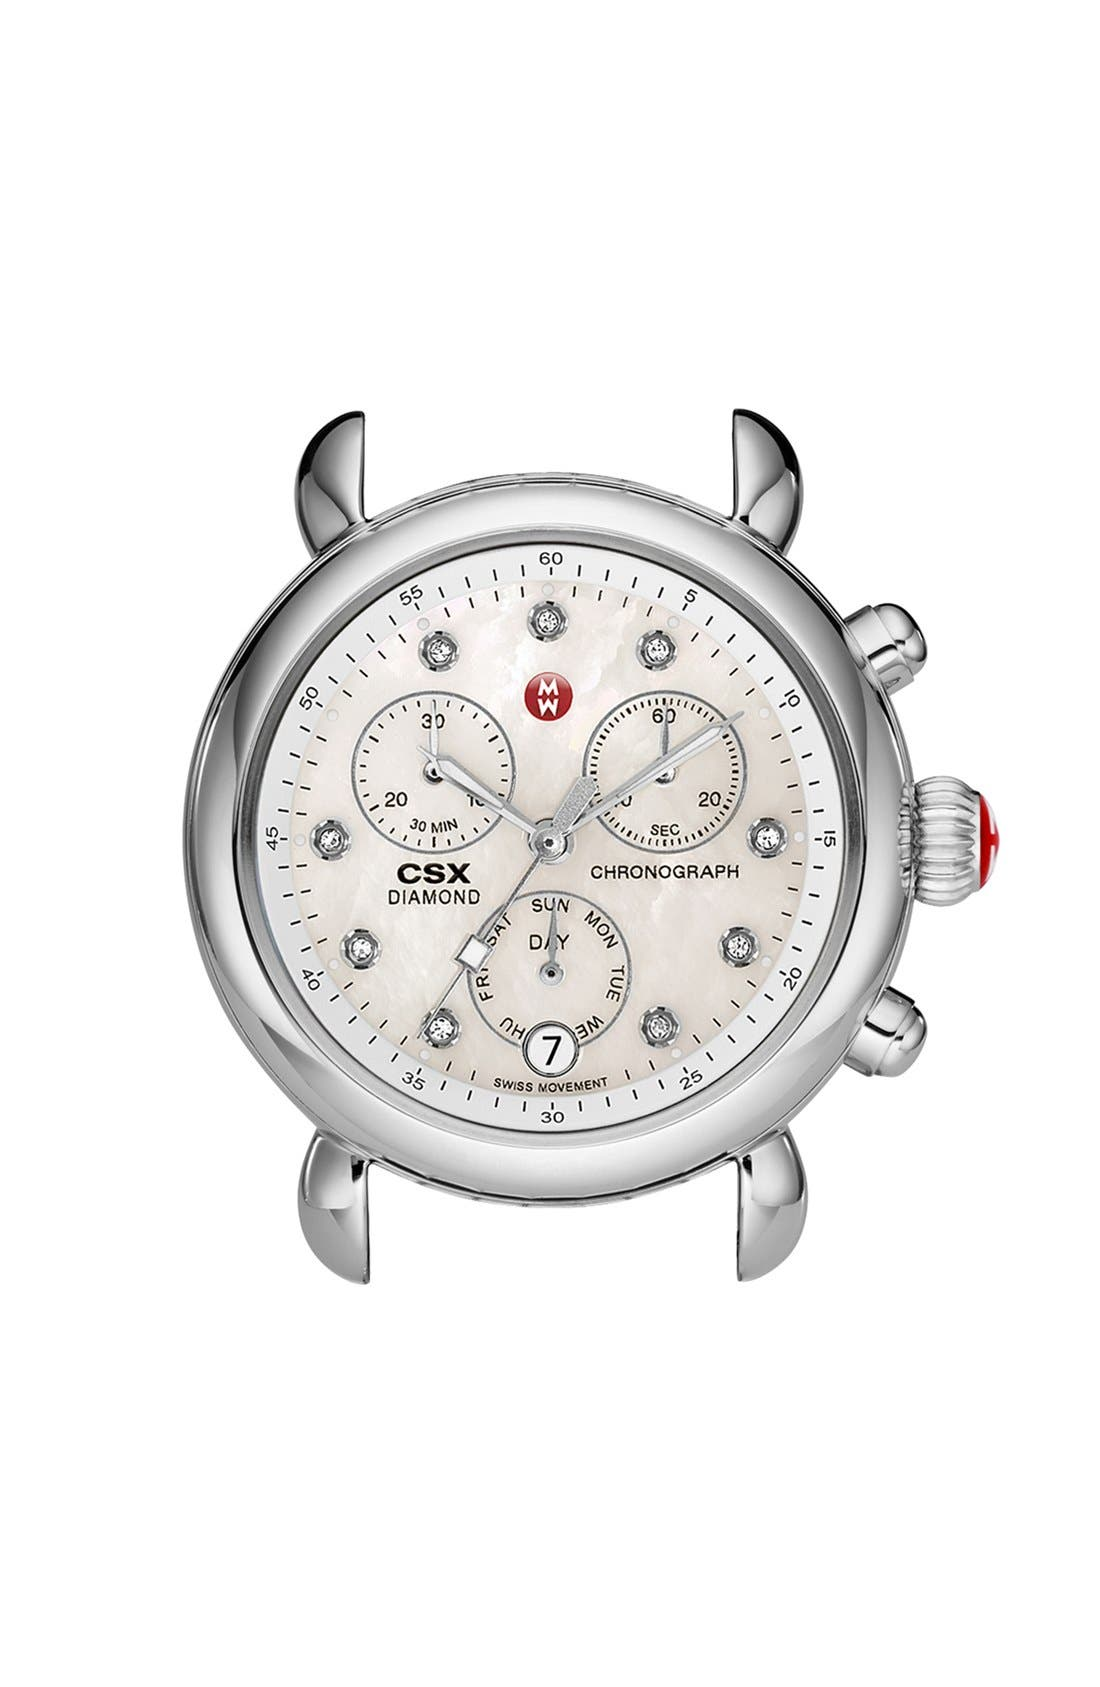 Alternate Image 1 Selected - MICHELE 'CSX-36' Diamond Dial Watch Case, 36mm